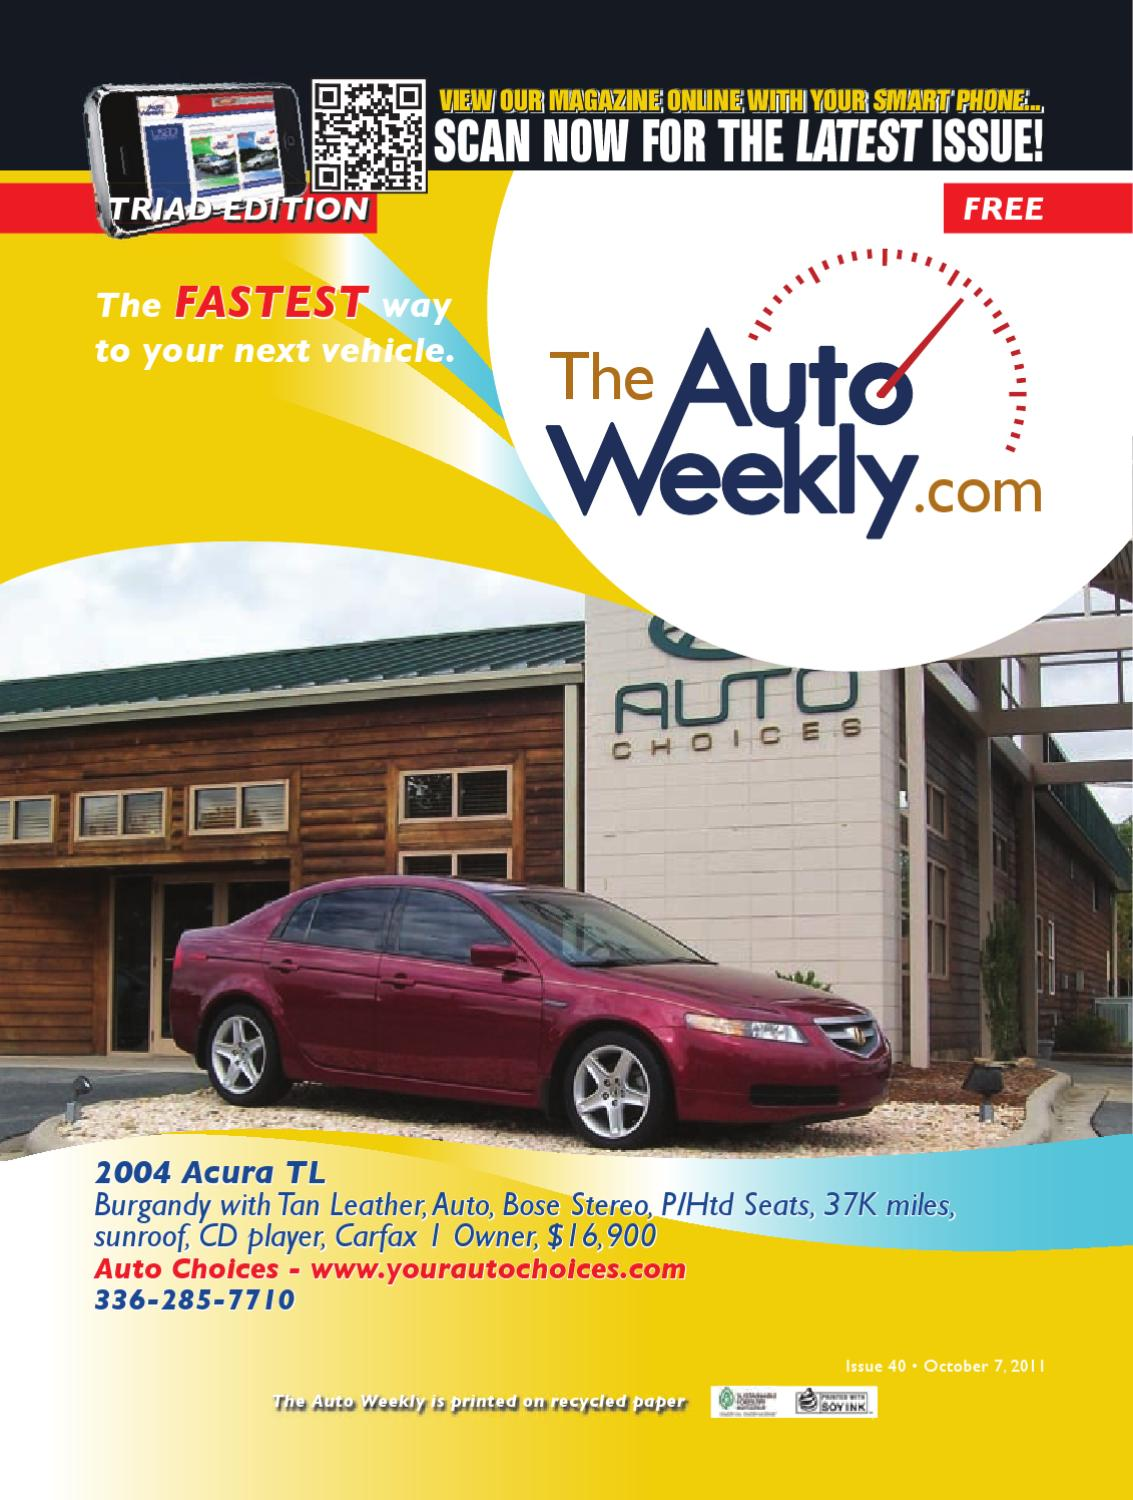 Issue 1140b Triad Edition The Auto Weekly By Issuu 2008 Infiniti Fx35 Oem Remote Start With Smartphone Control Free